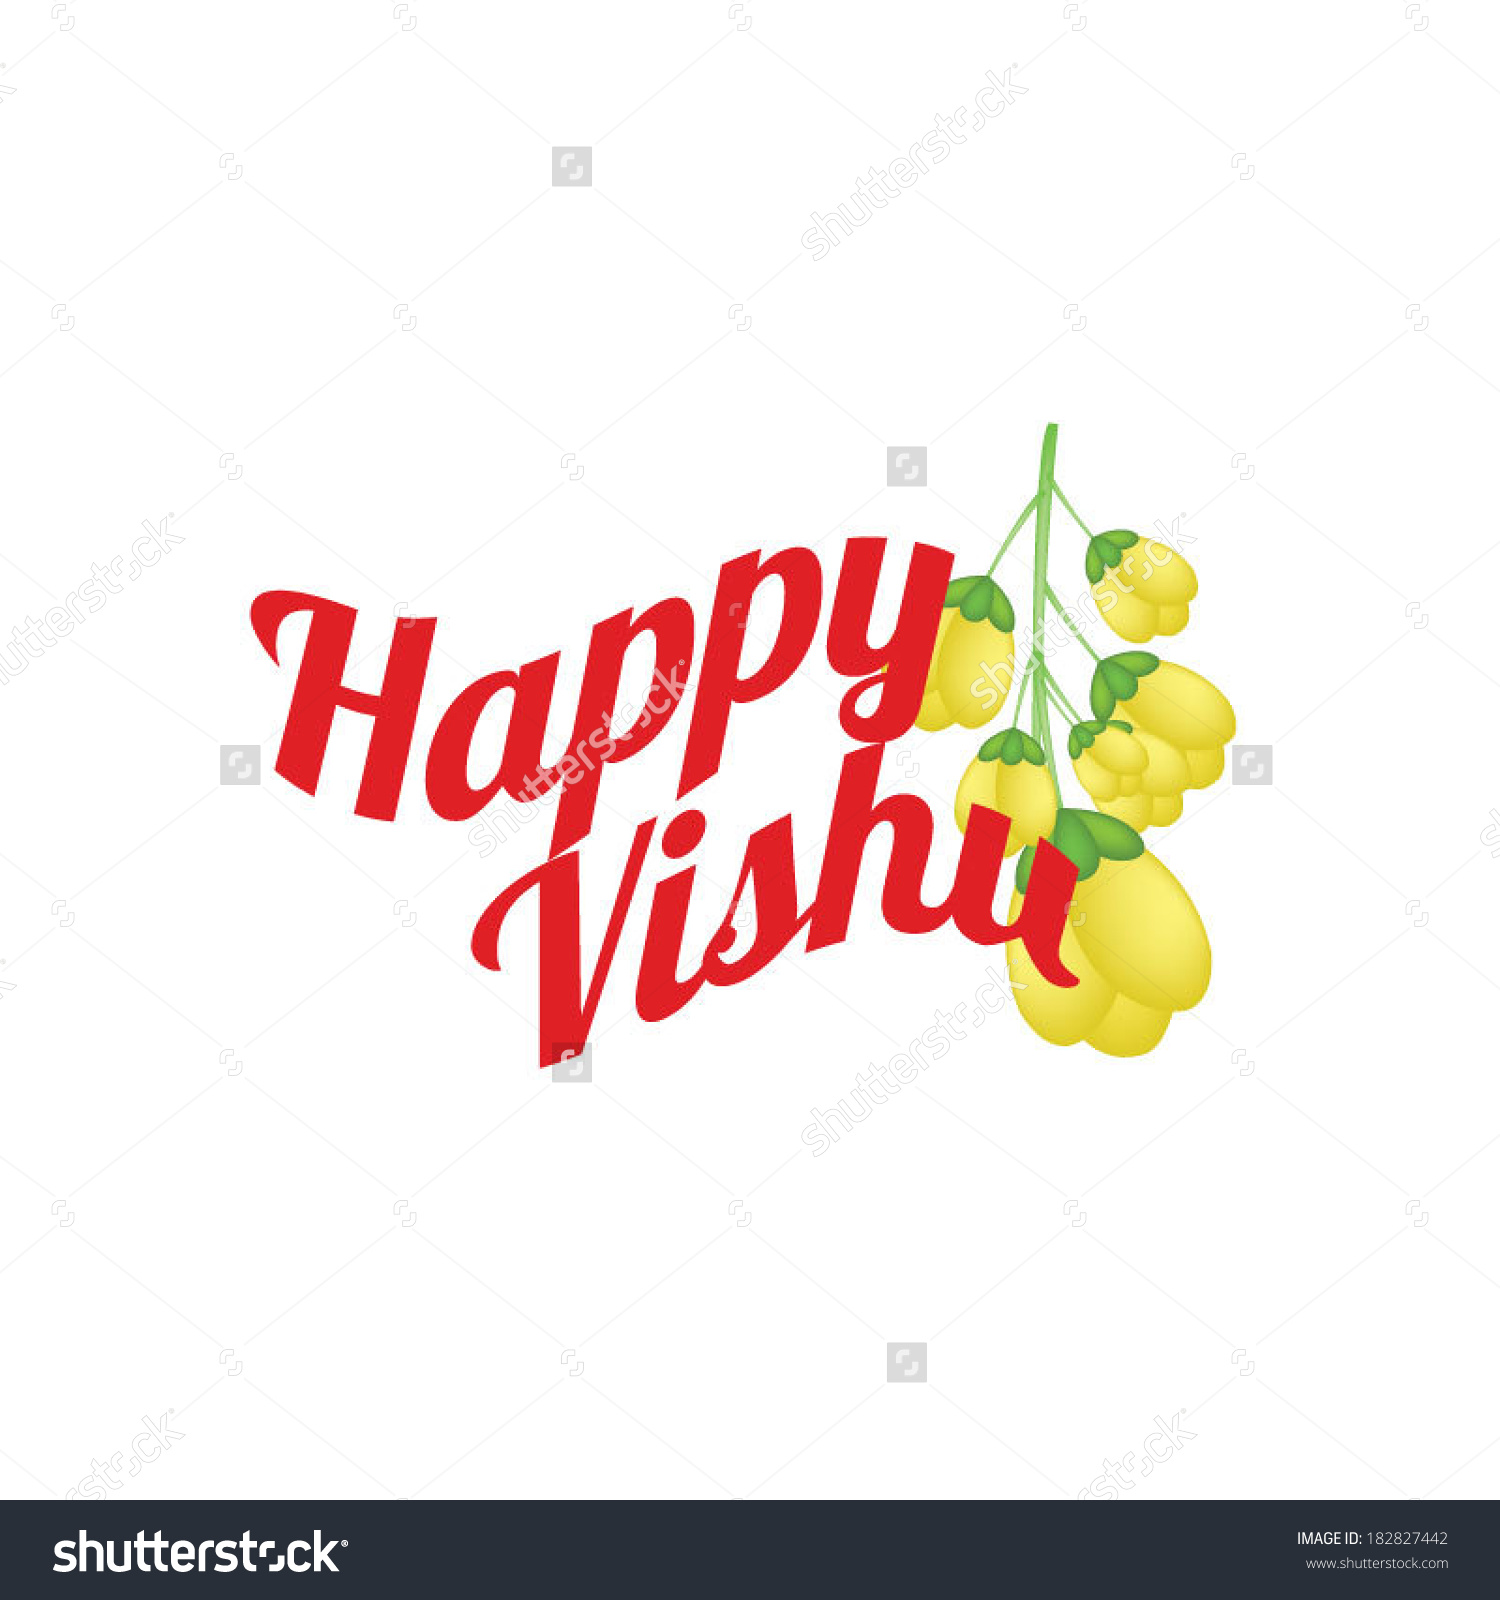 Happy Vishu Indian Festival Stock Vector 182827442.